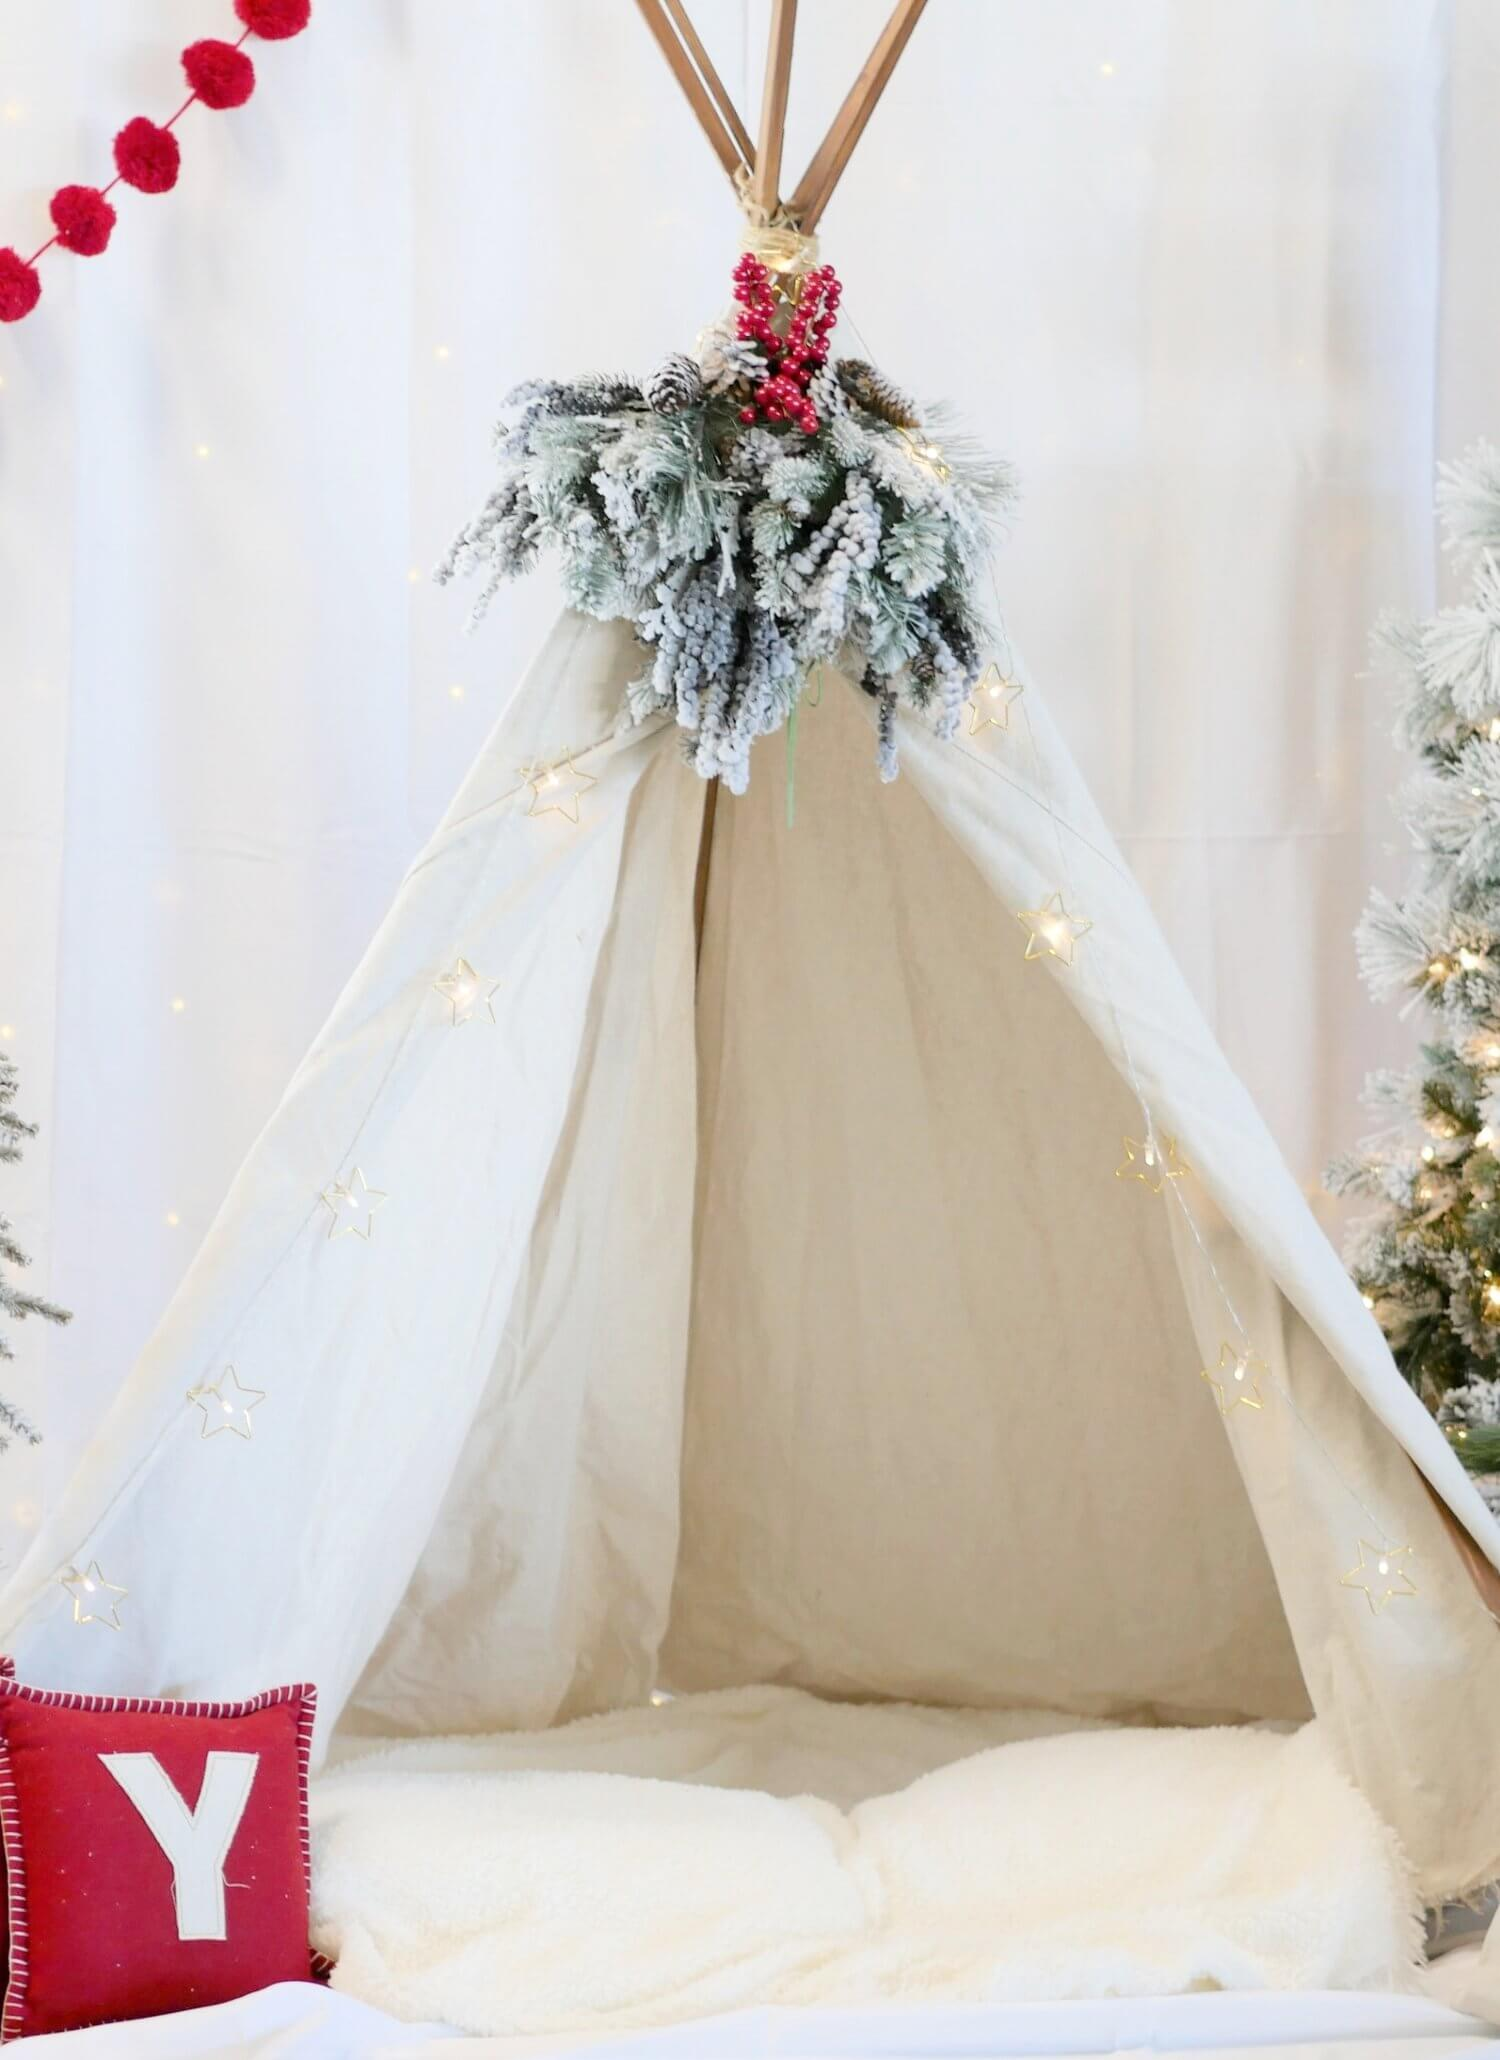 When creating a holiday photo booth for family and friends - look for props at home before heading out to shop. This teepee was from a boho birthday party and provided the perfect photo booth prop. Click for more Photo Booth Tips from Mint Event Design www.minteventdesign.com #holidayphotography #photoboothideas #christmaspartyideas #photobooth #holidayparties